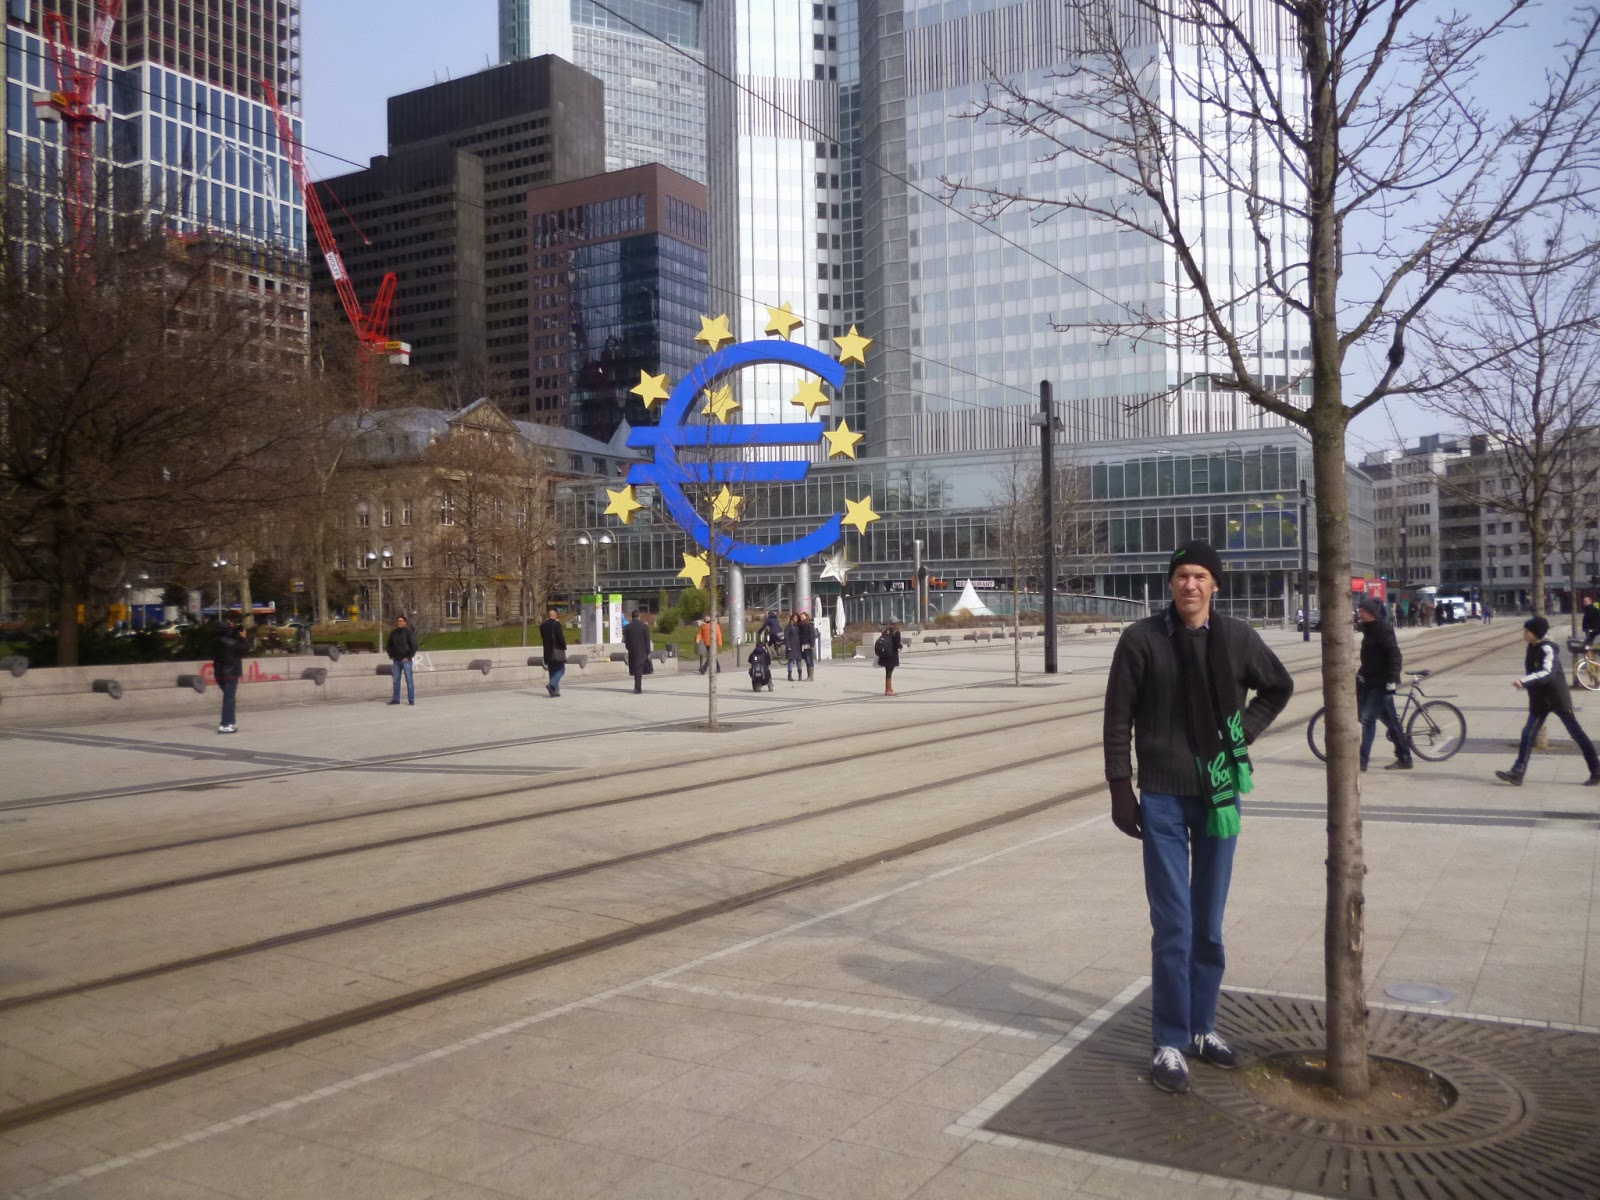 Me at Europlaz